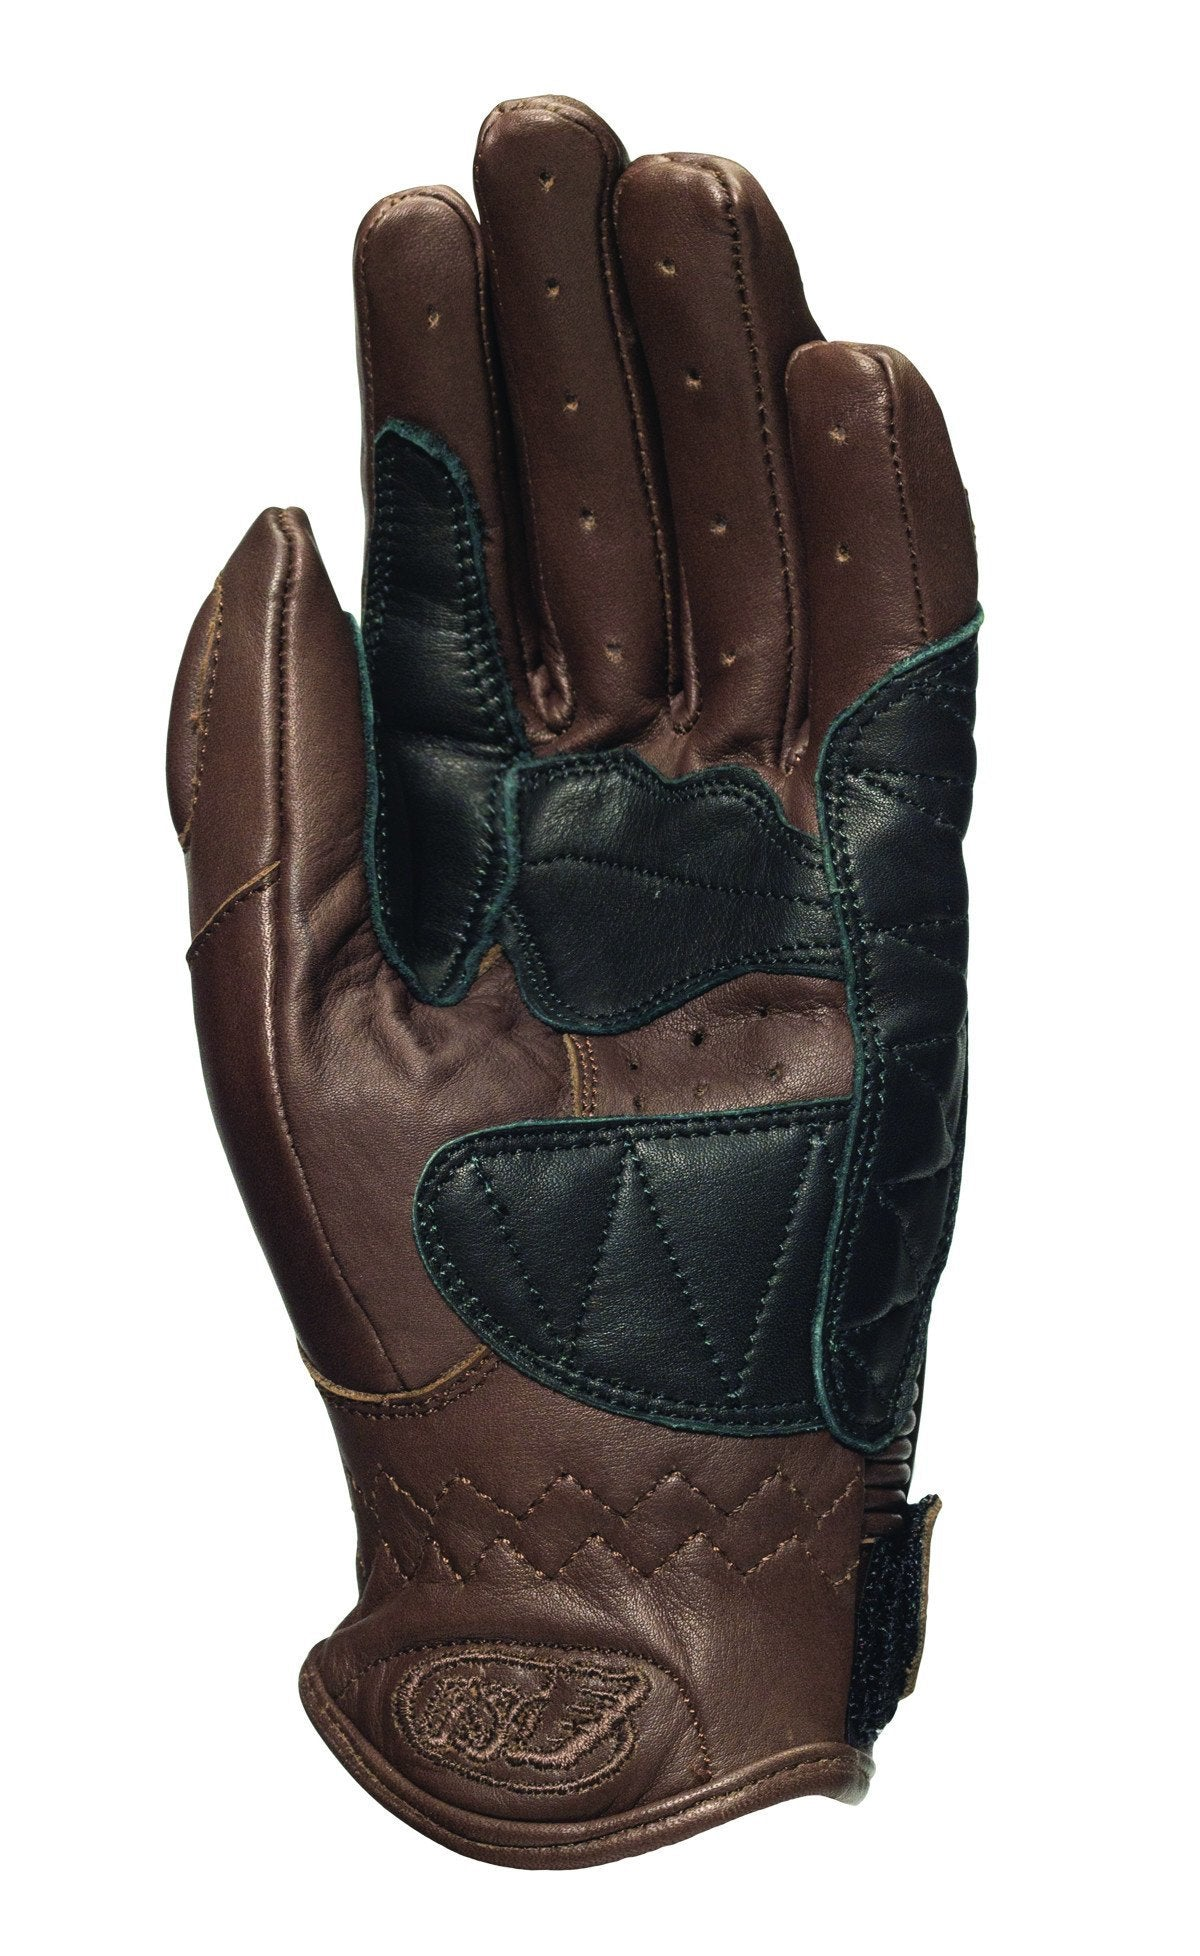 Roland Sands Design - Roland Sands Design Ladies Gezel Gloves - Tobacco - Gloves - Salt Flats Clothing